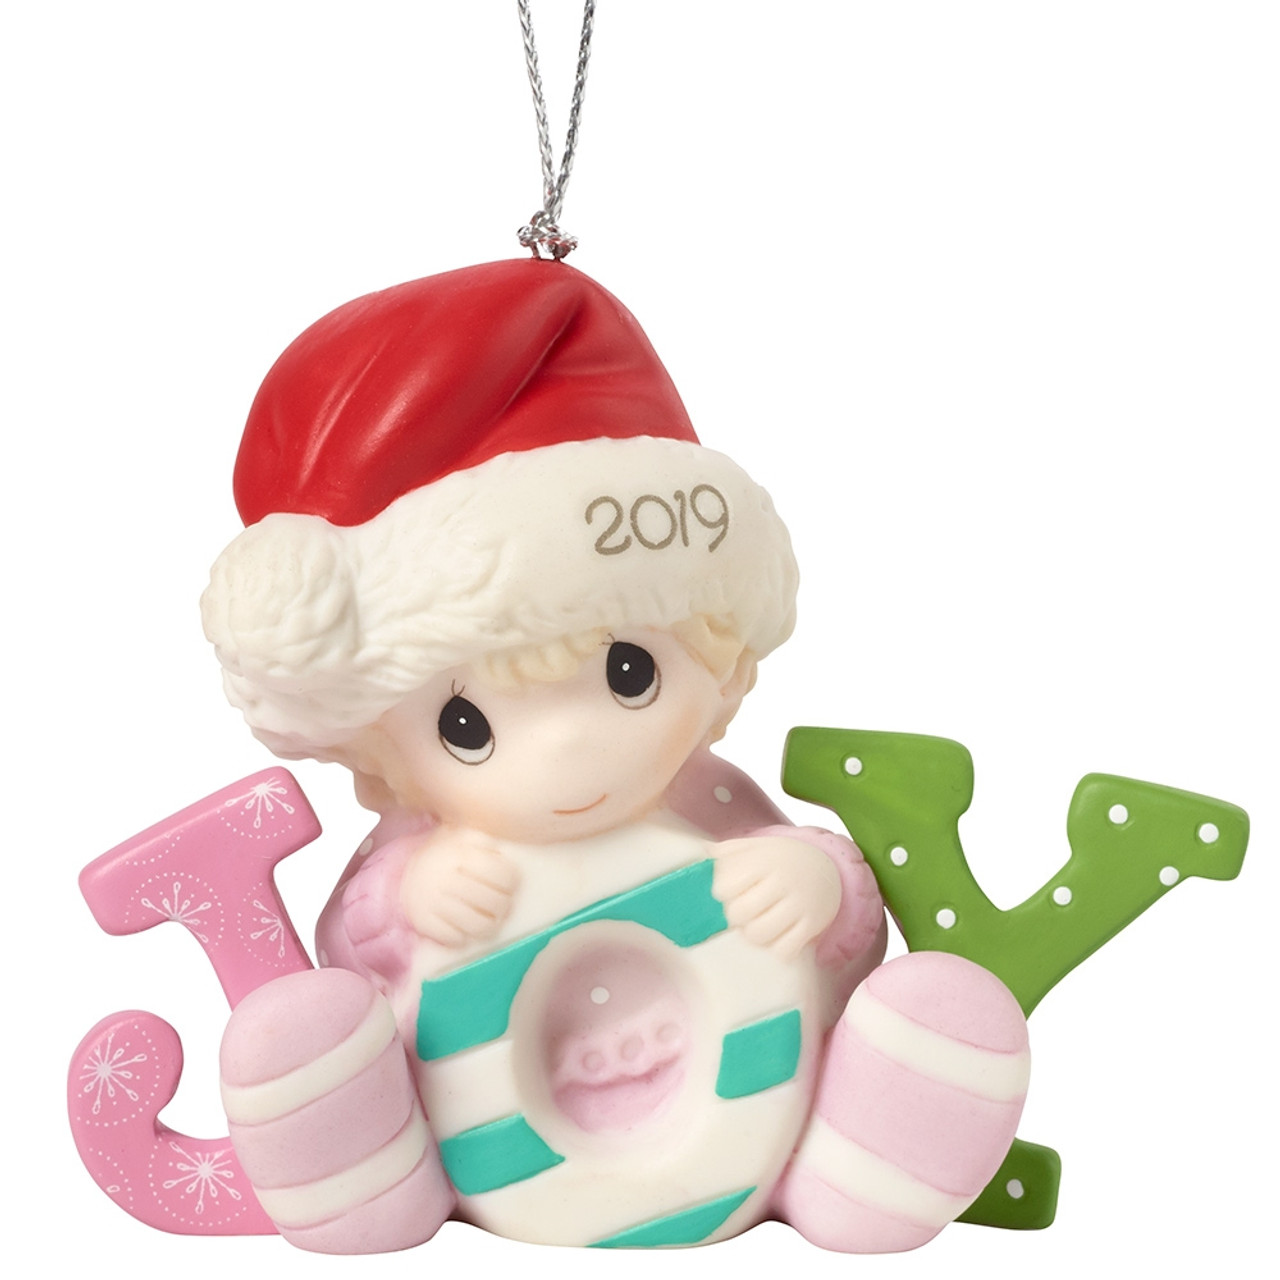 "Babys First Christmas Gifts: Christmas Gifts, 2019 Dated Ornament, ""Baby's First"